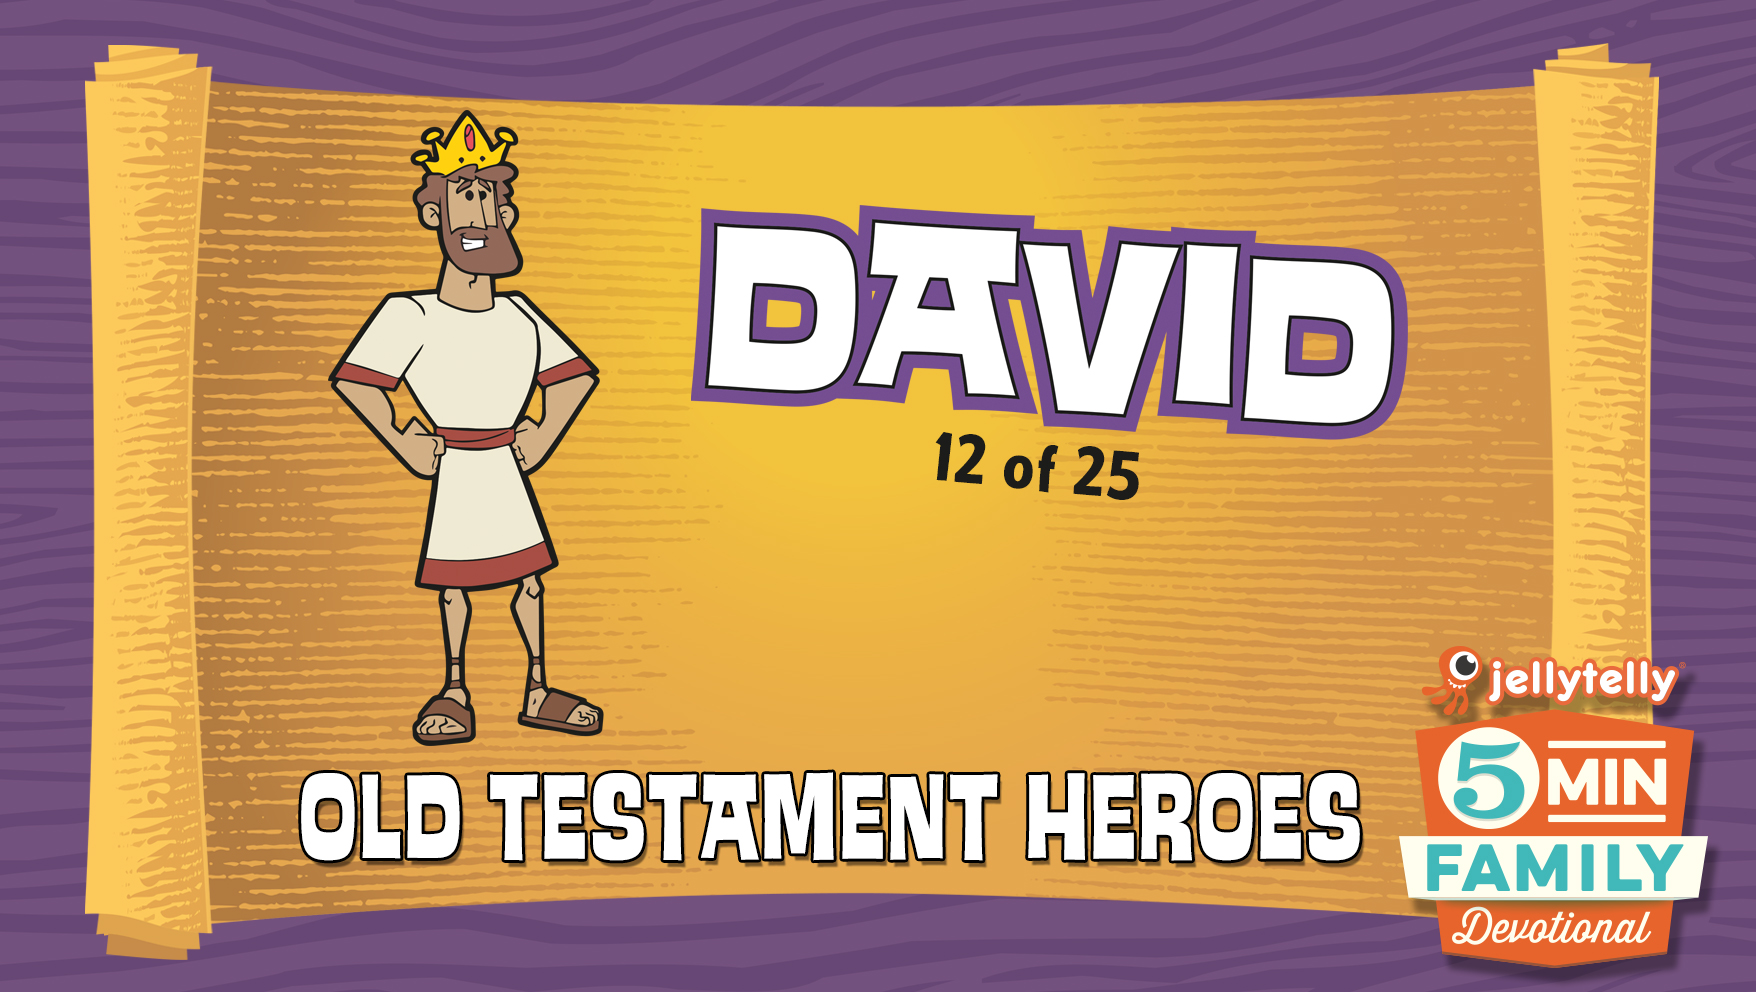 David: Old Testament Heroes - 5 Minute Family Devotional